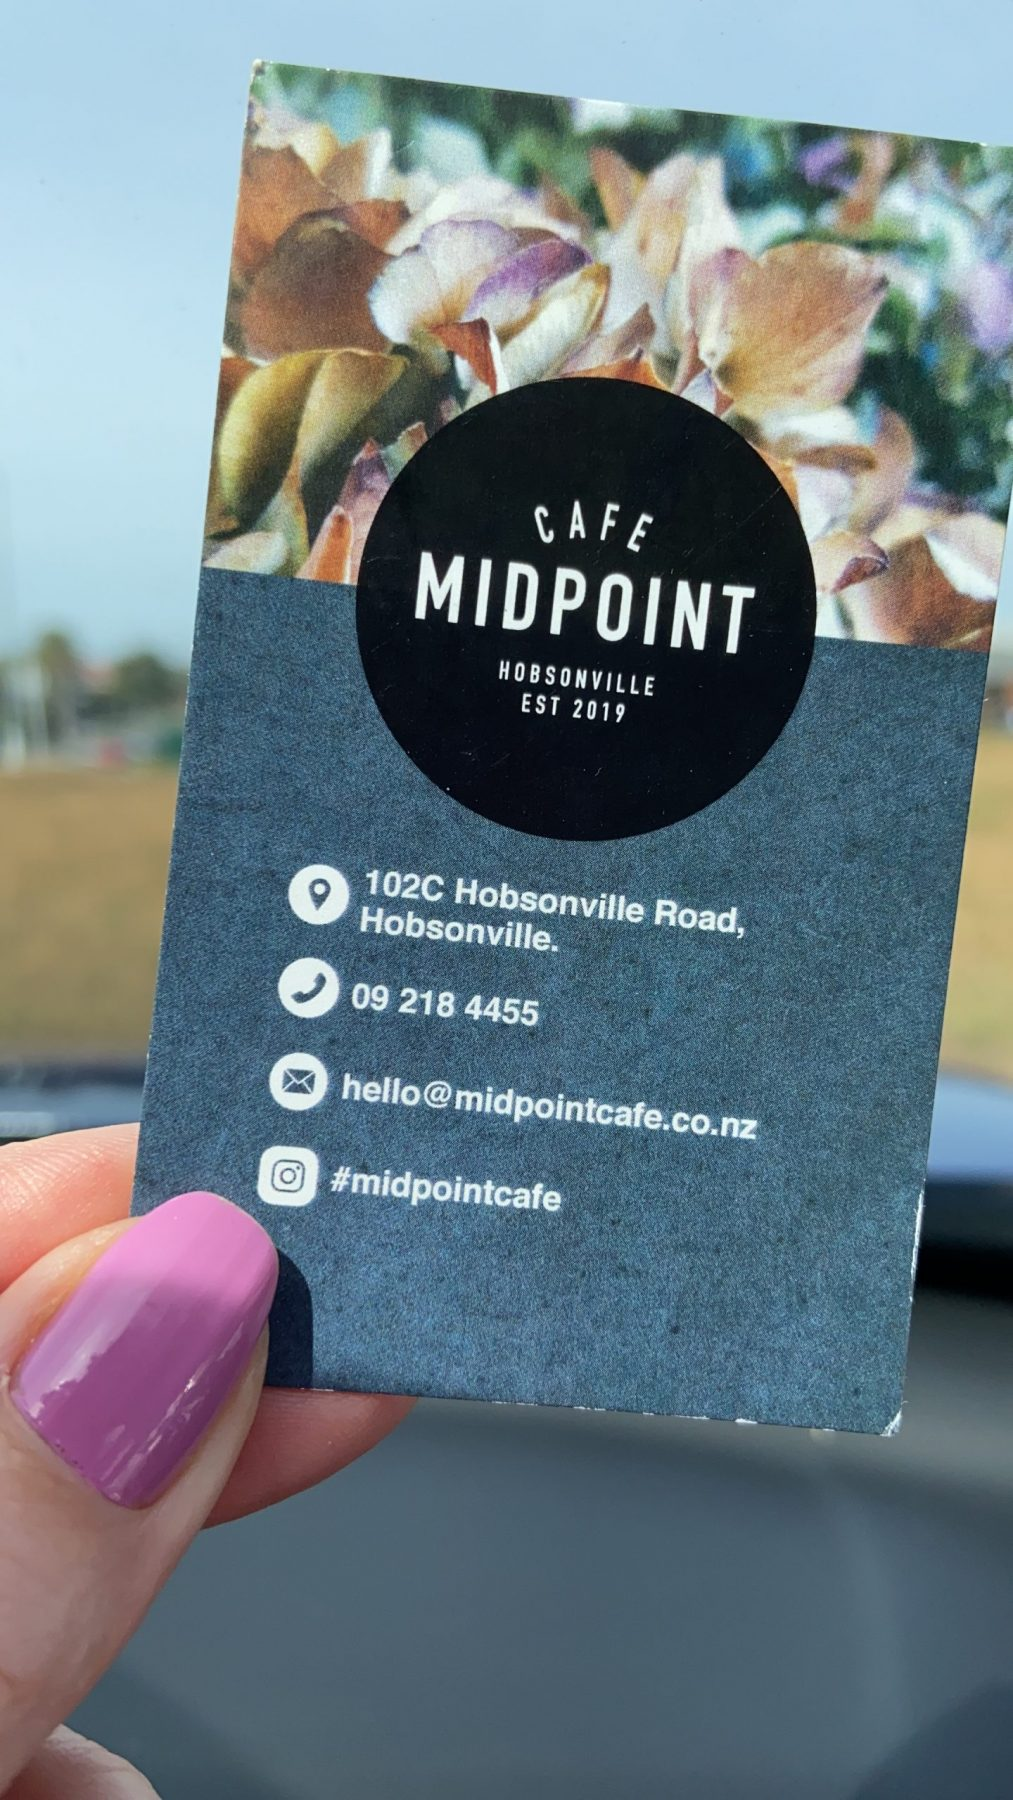 Cafe Midpoint Hobsonville business card